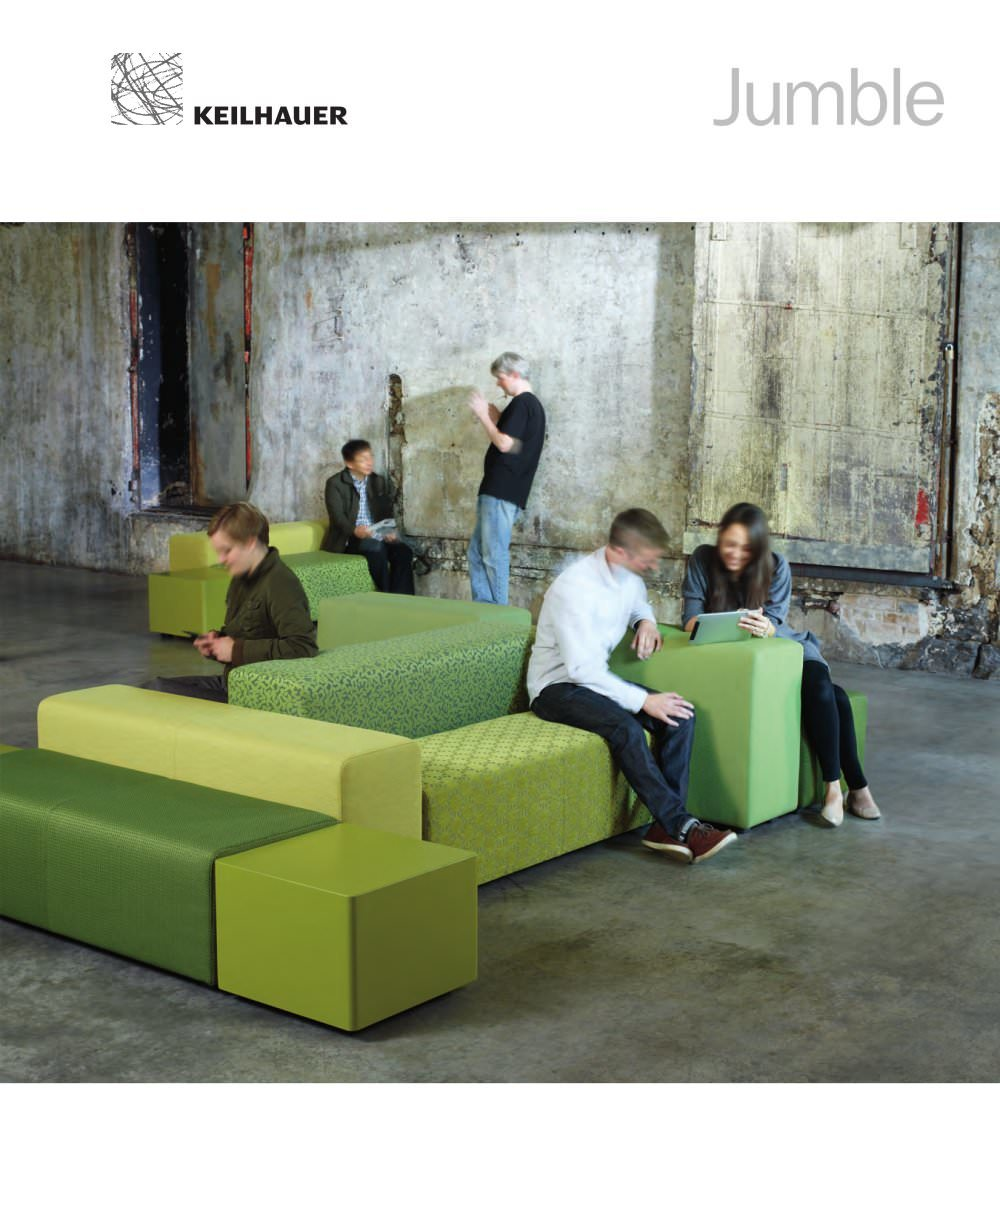 Keilhauer Jumble Group